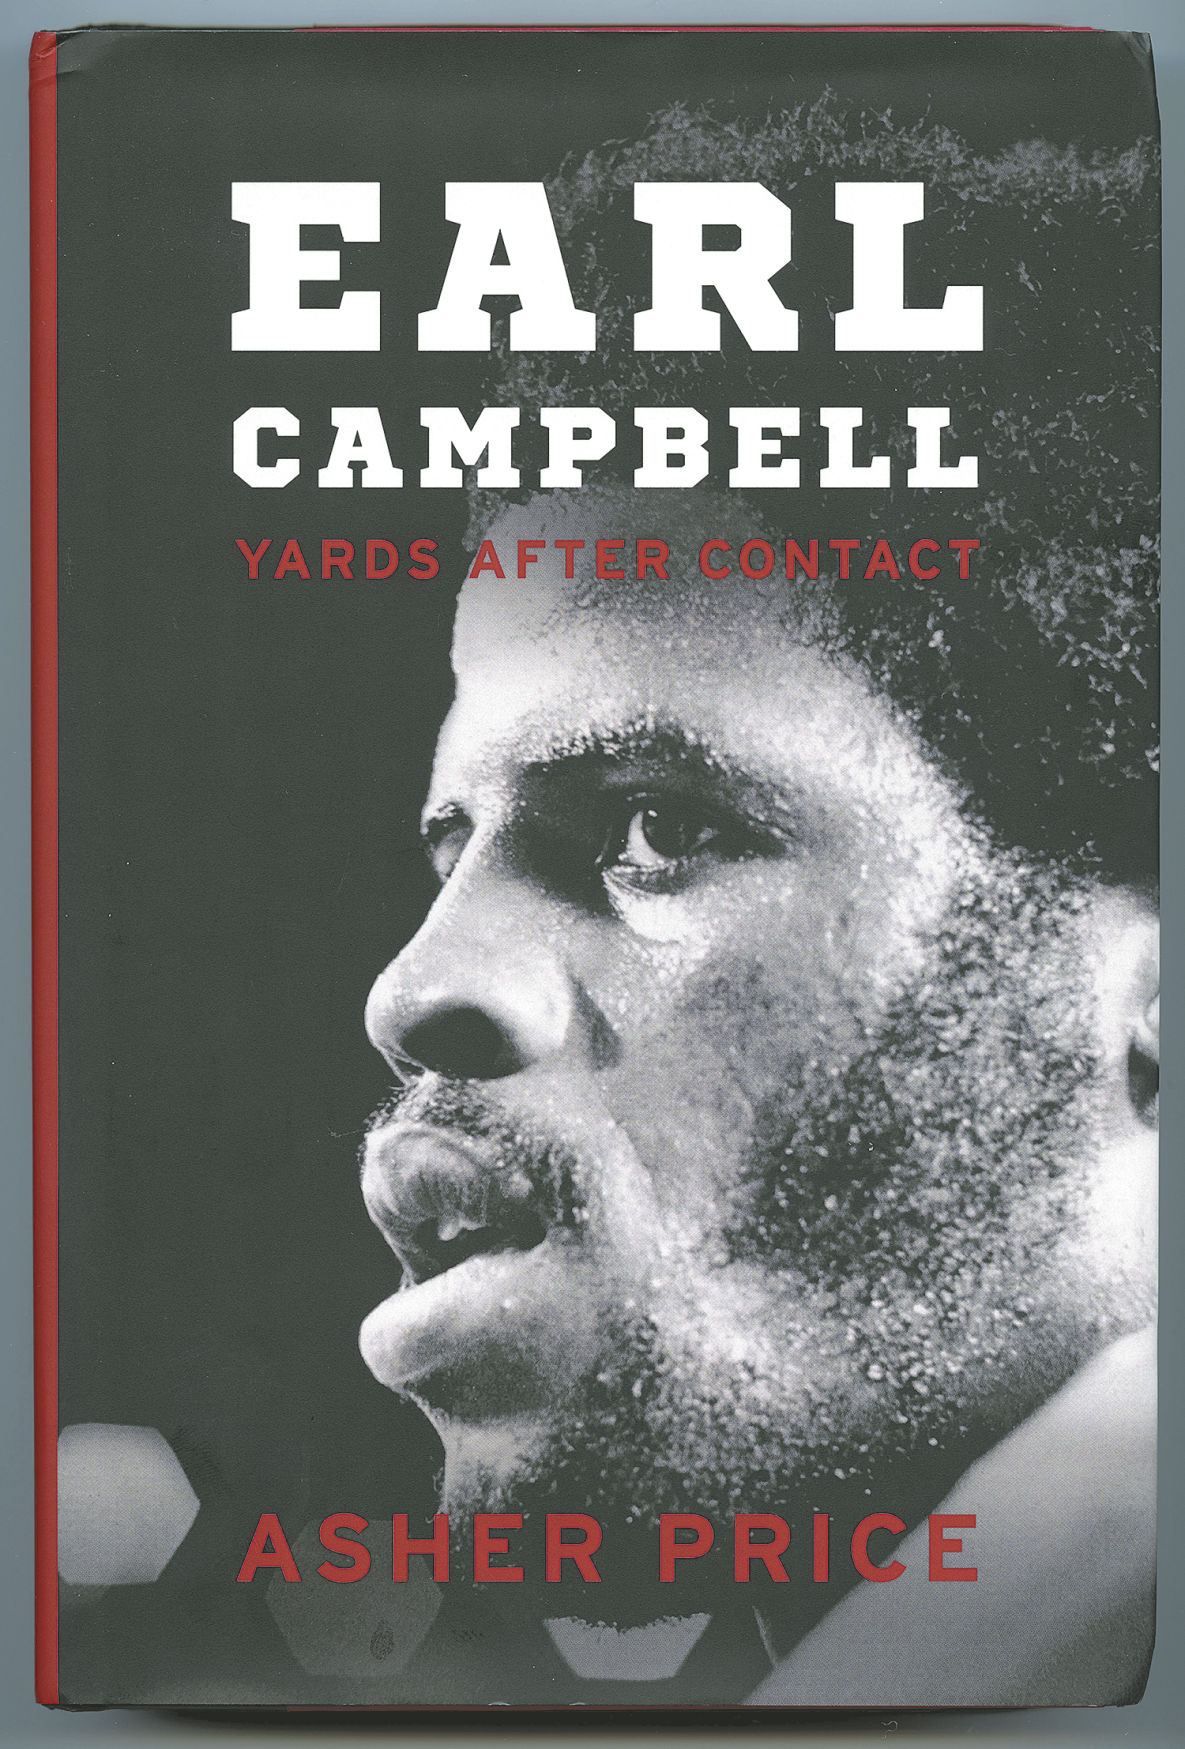 Earl Campbell book